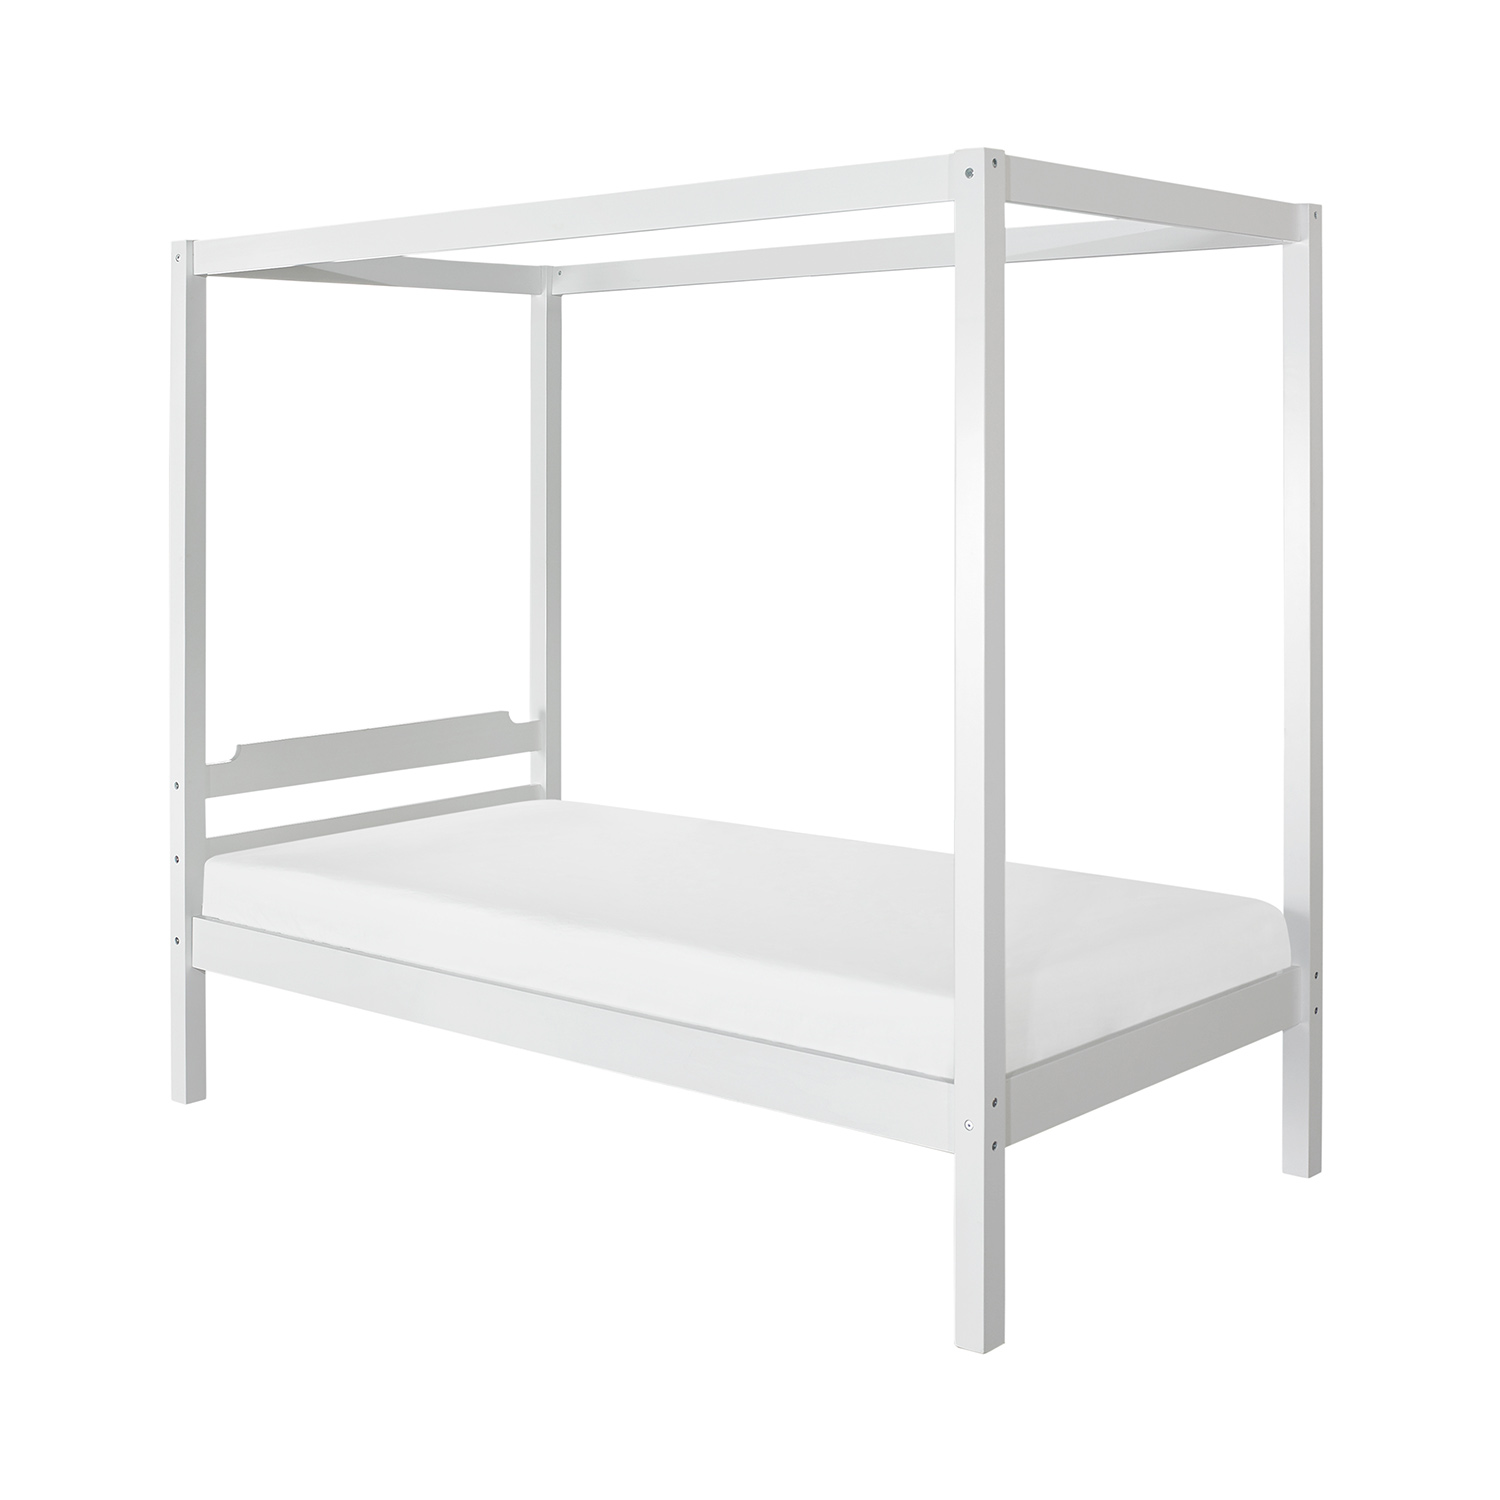 Hillsdale Sutton Wood Canopy Twin Bed - White